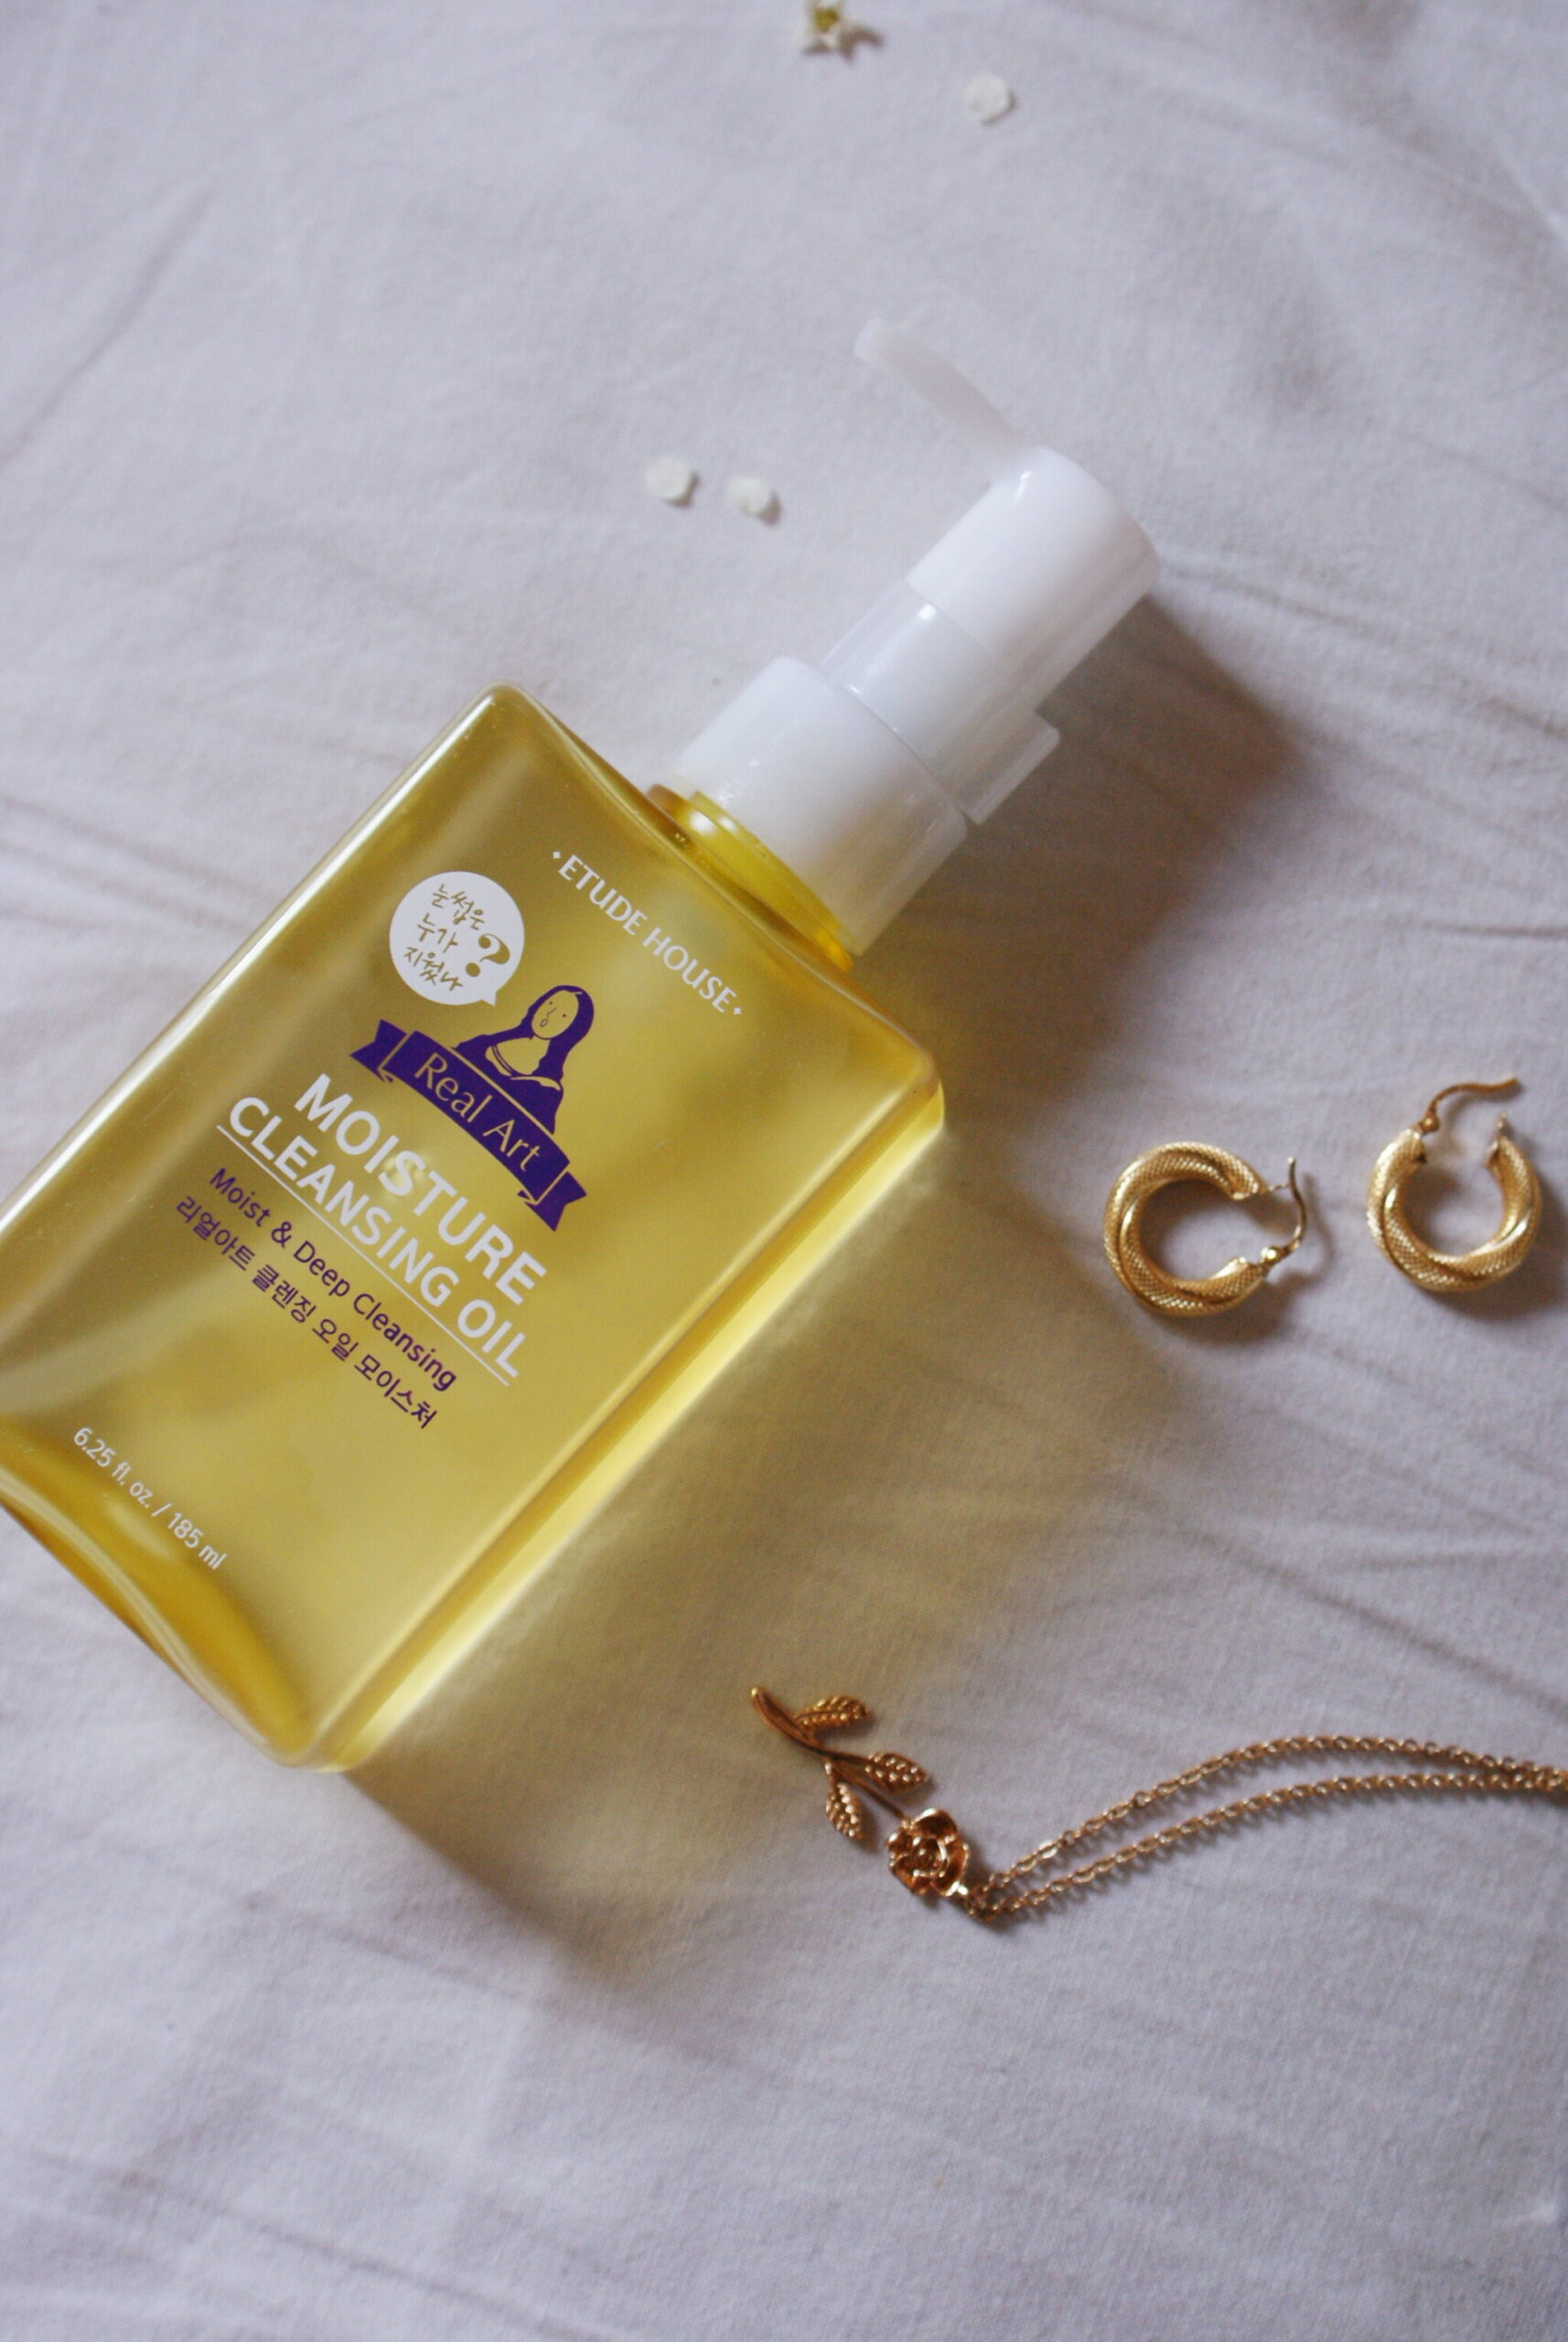 etude house oil review beauty cleansing